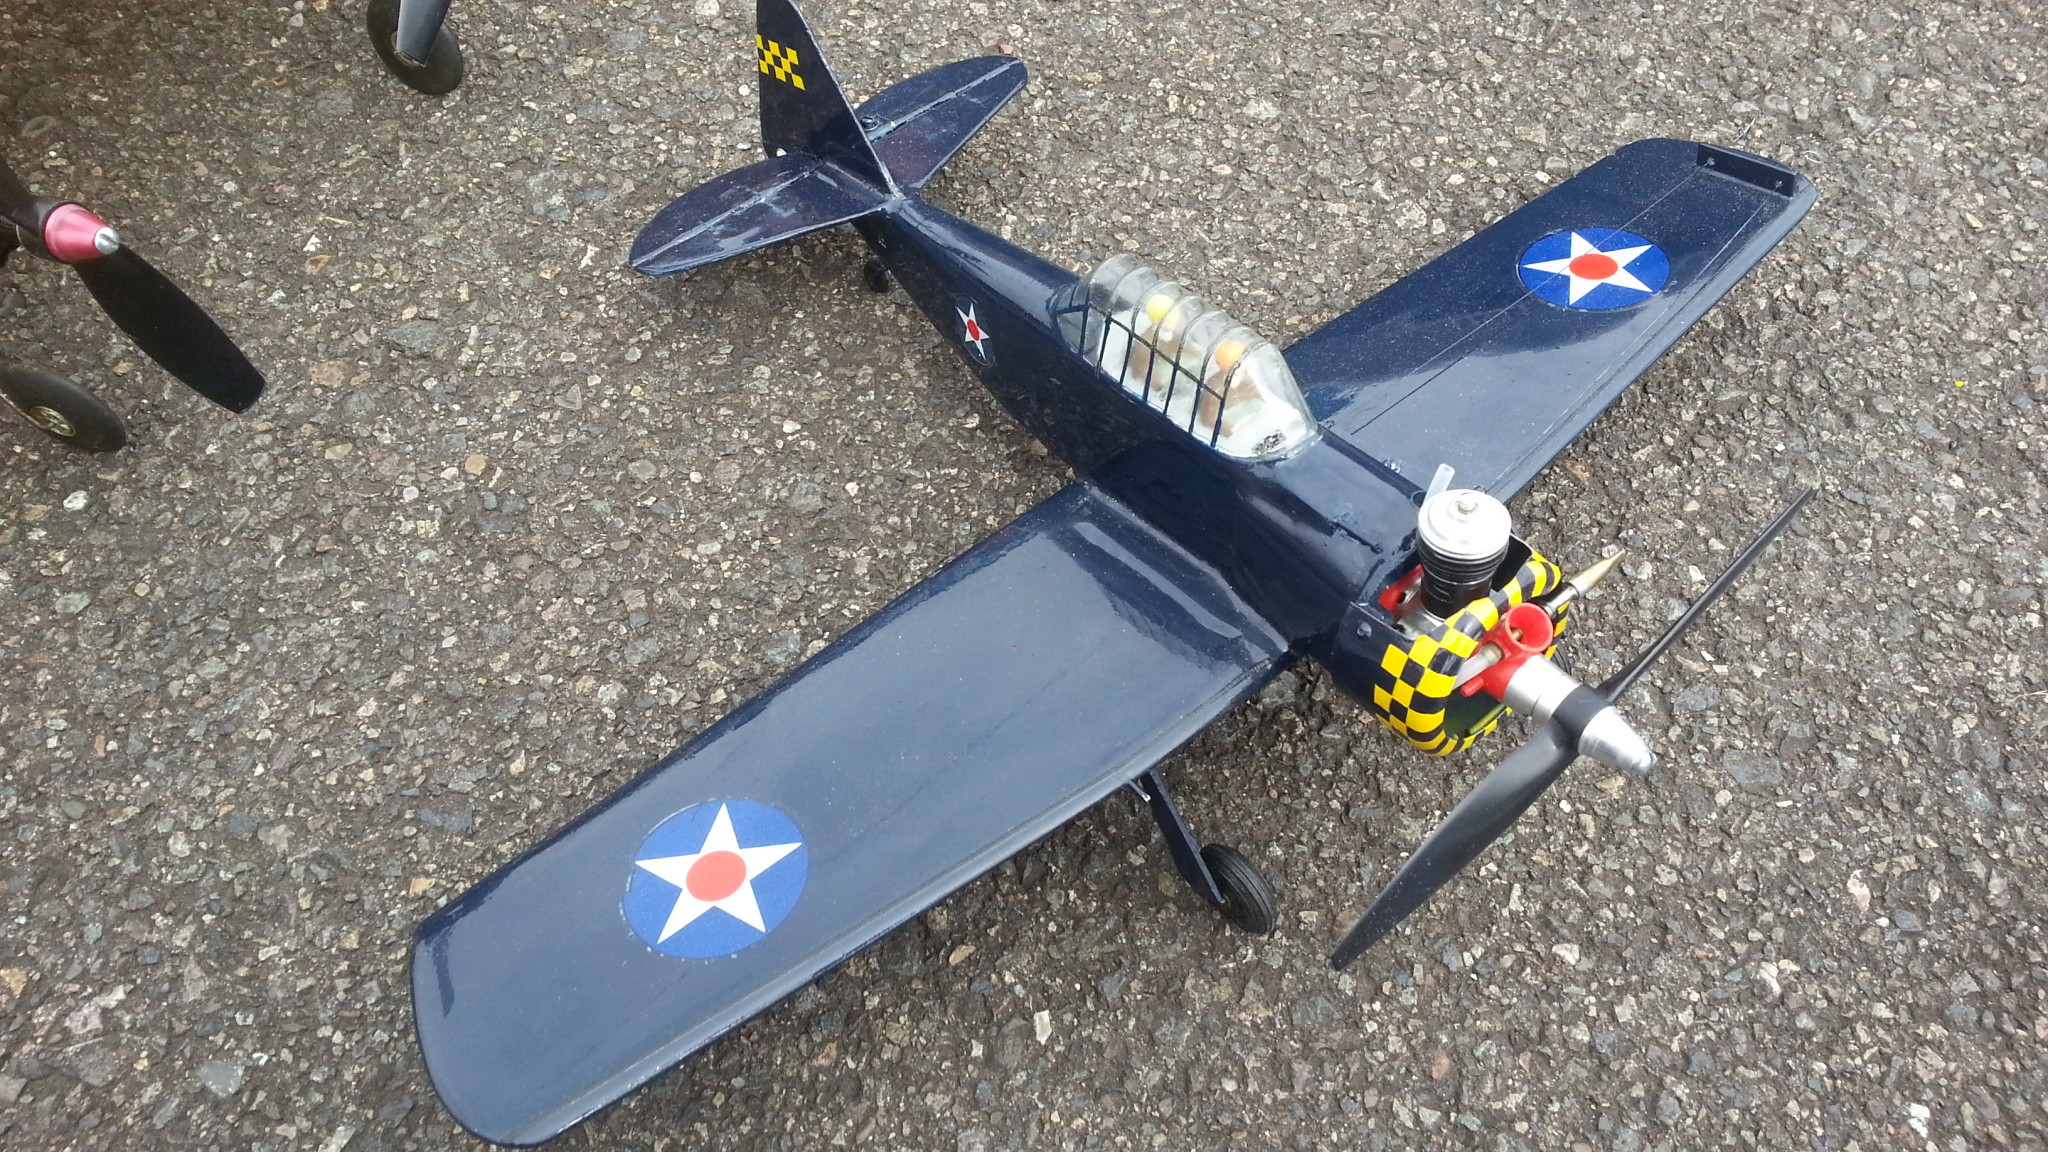 1/2A Scale competition models flown at the 2018 NW Regional Championships 20180537